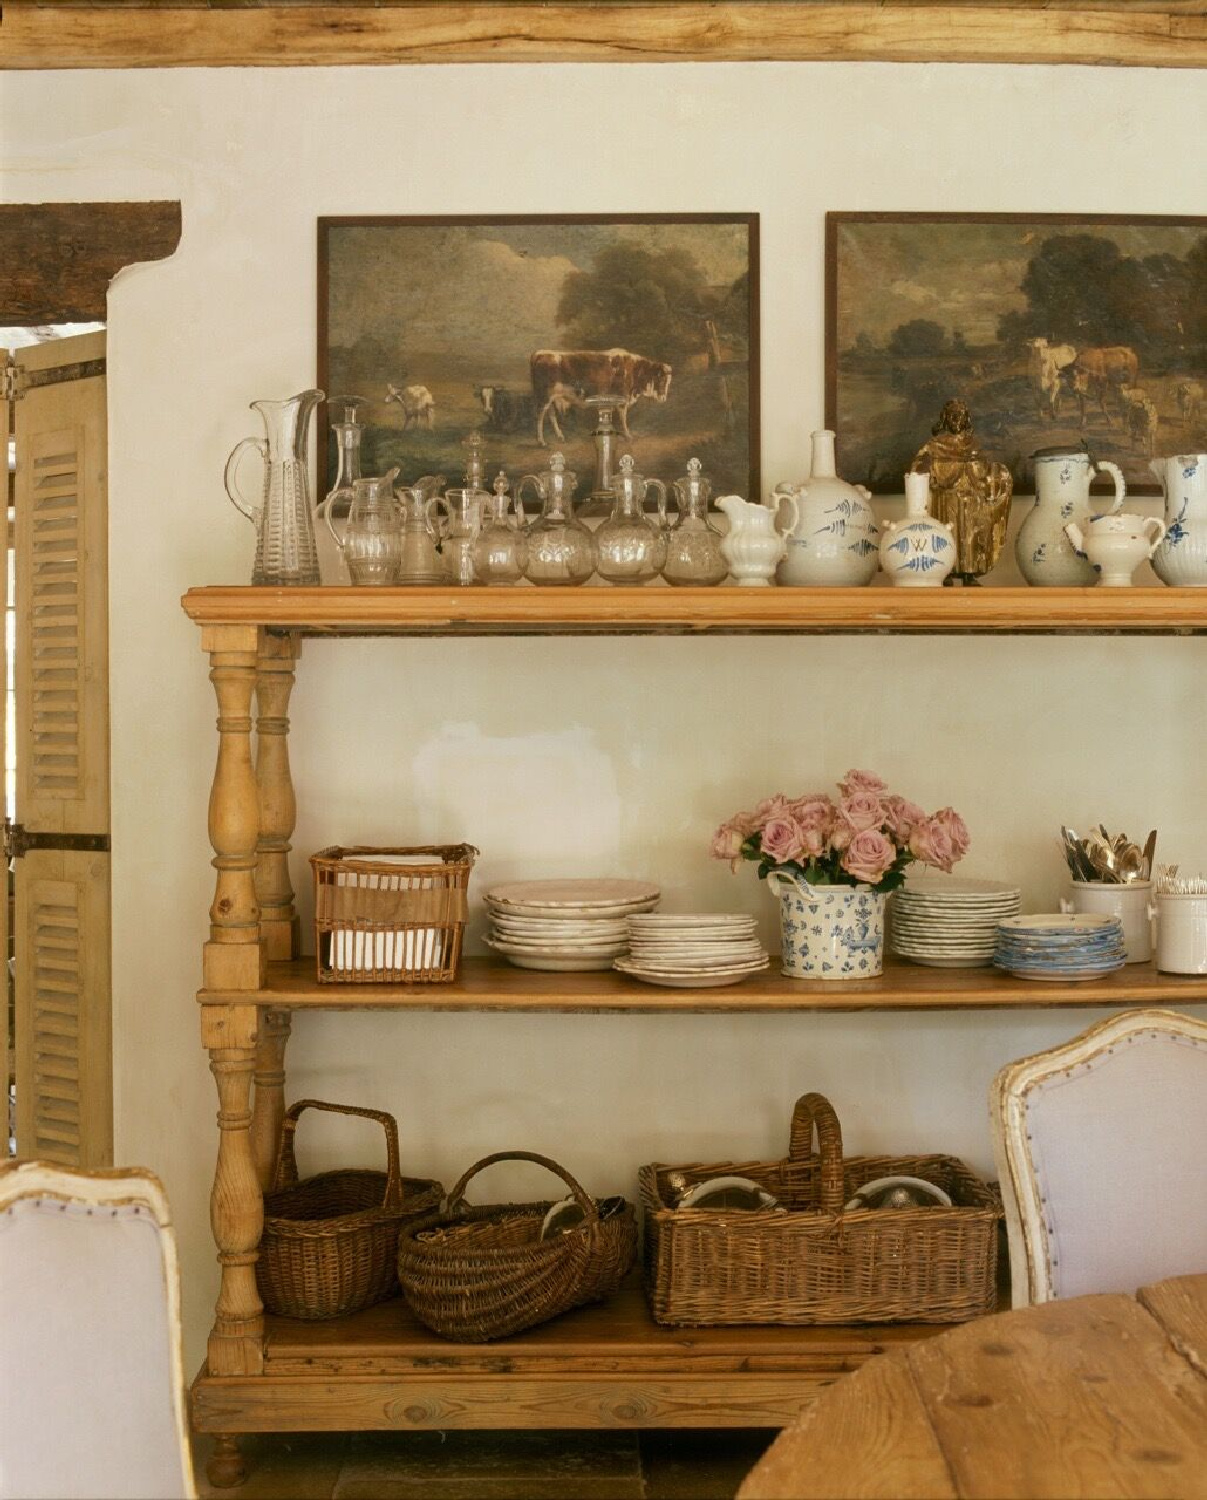 French country dining room. Chateau Domingue. Design by Pamela Pierce. Come score ideas for a Timeless and Tranquil European Country Inspired Look. #europeancountry #interiordesign #frenchcountry